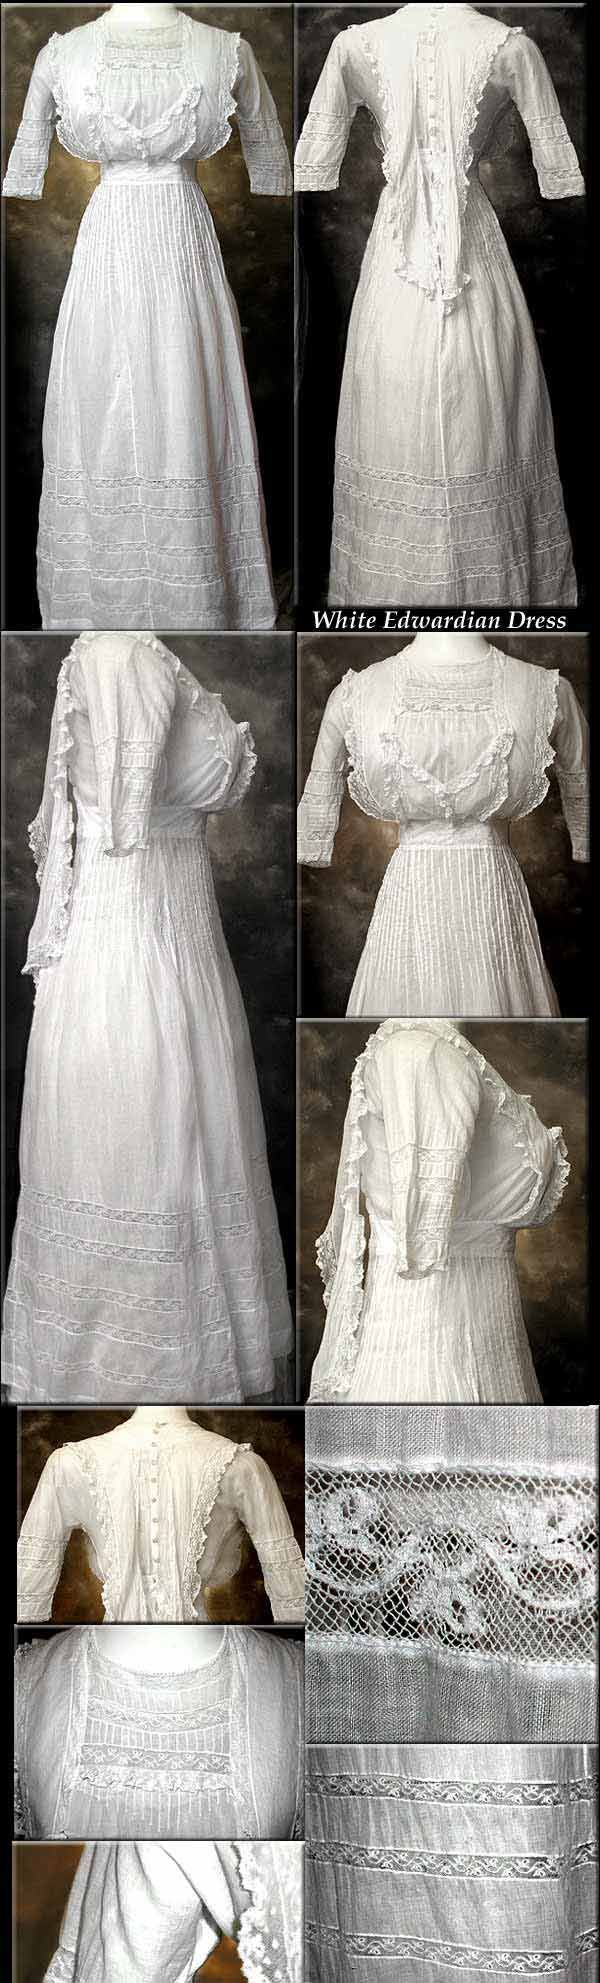 Batiste and lace summer dress with Valenciennes lace, 1906. Unlined. Bustledress.com via Neverlight.